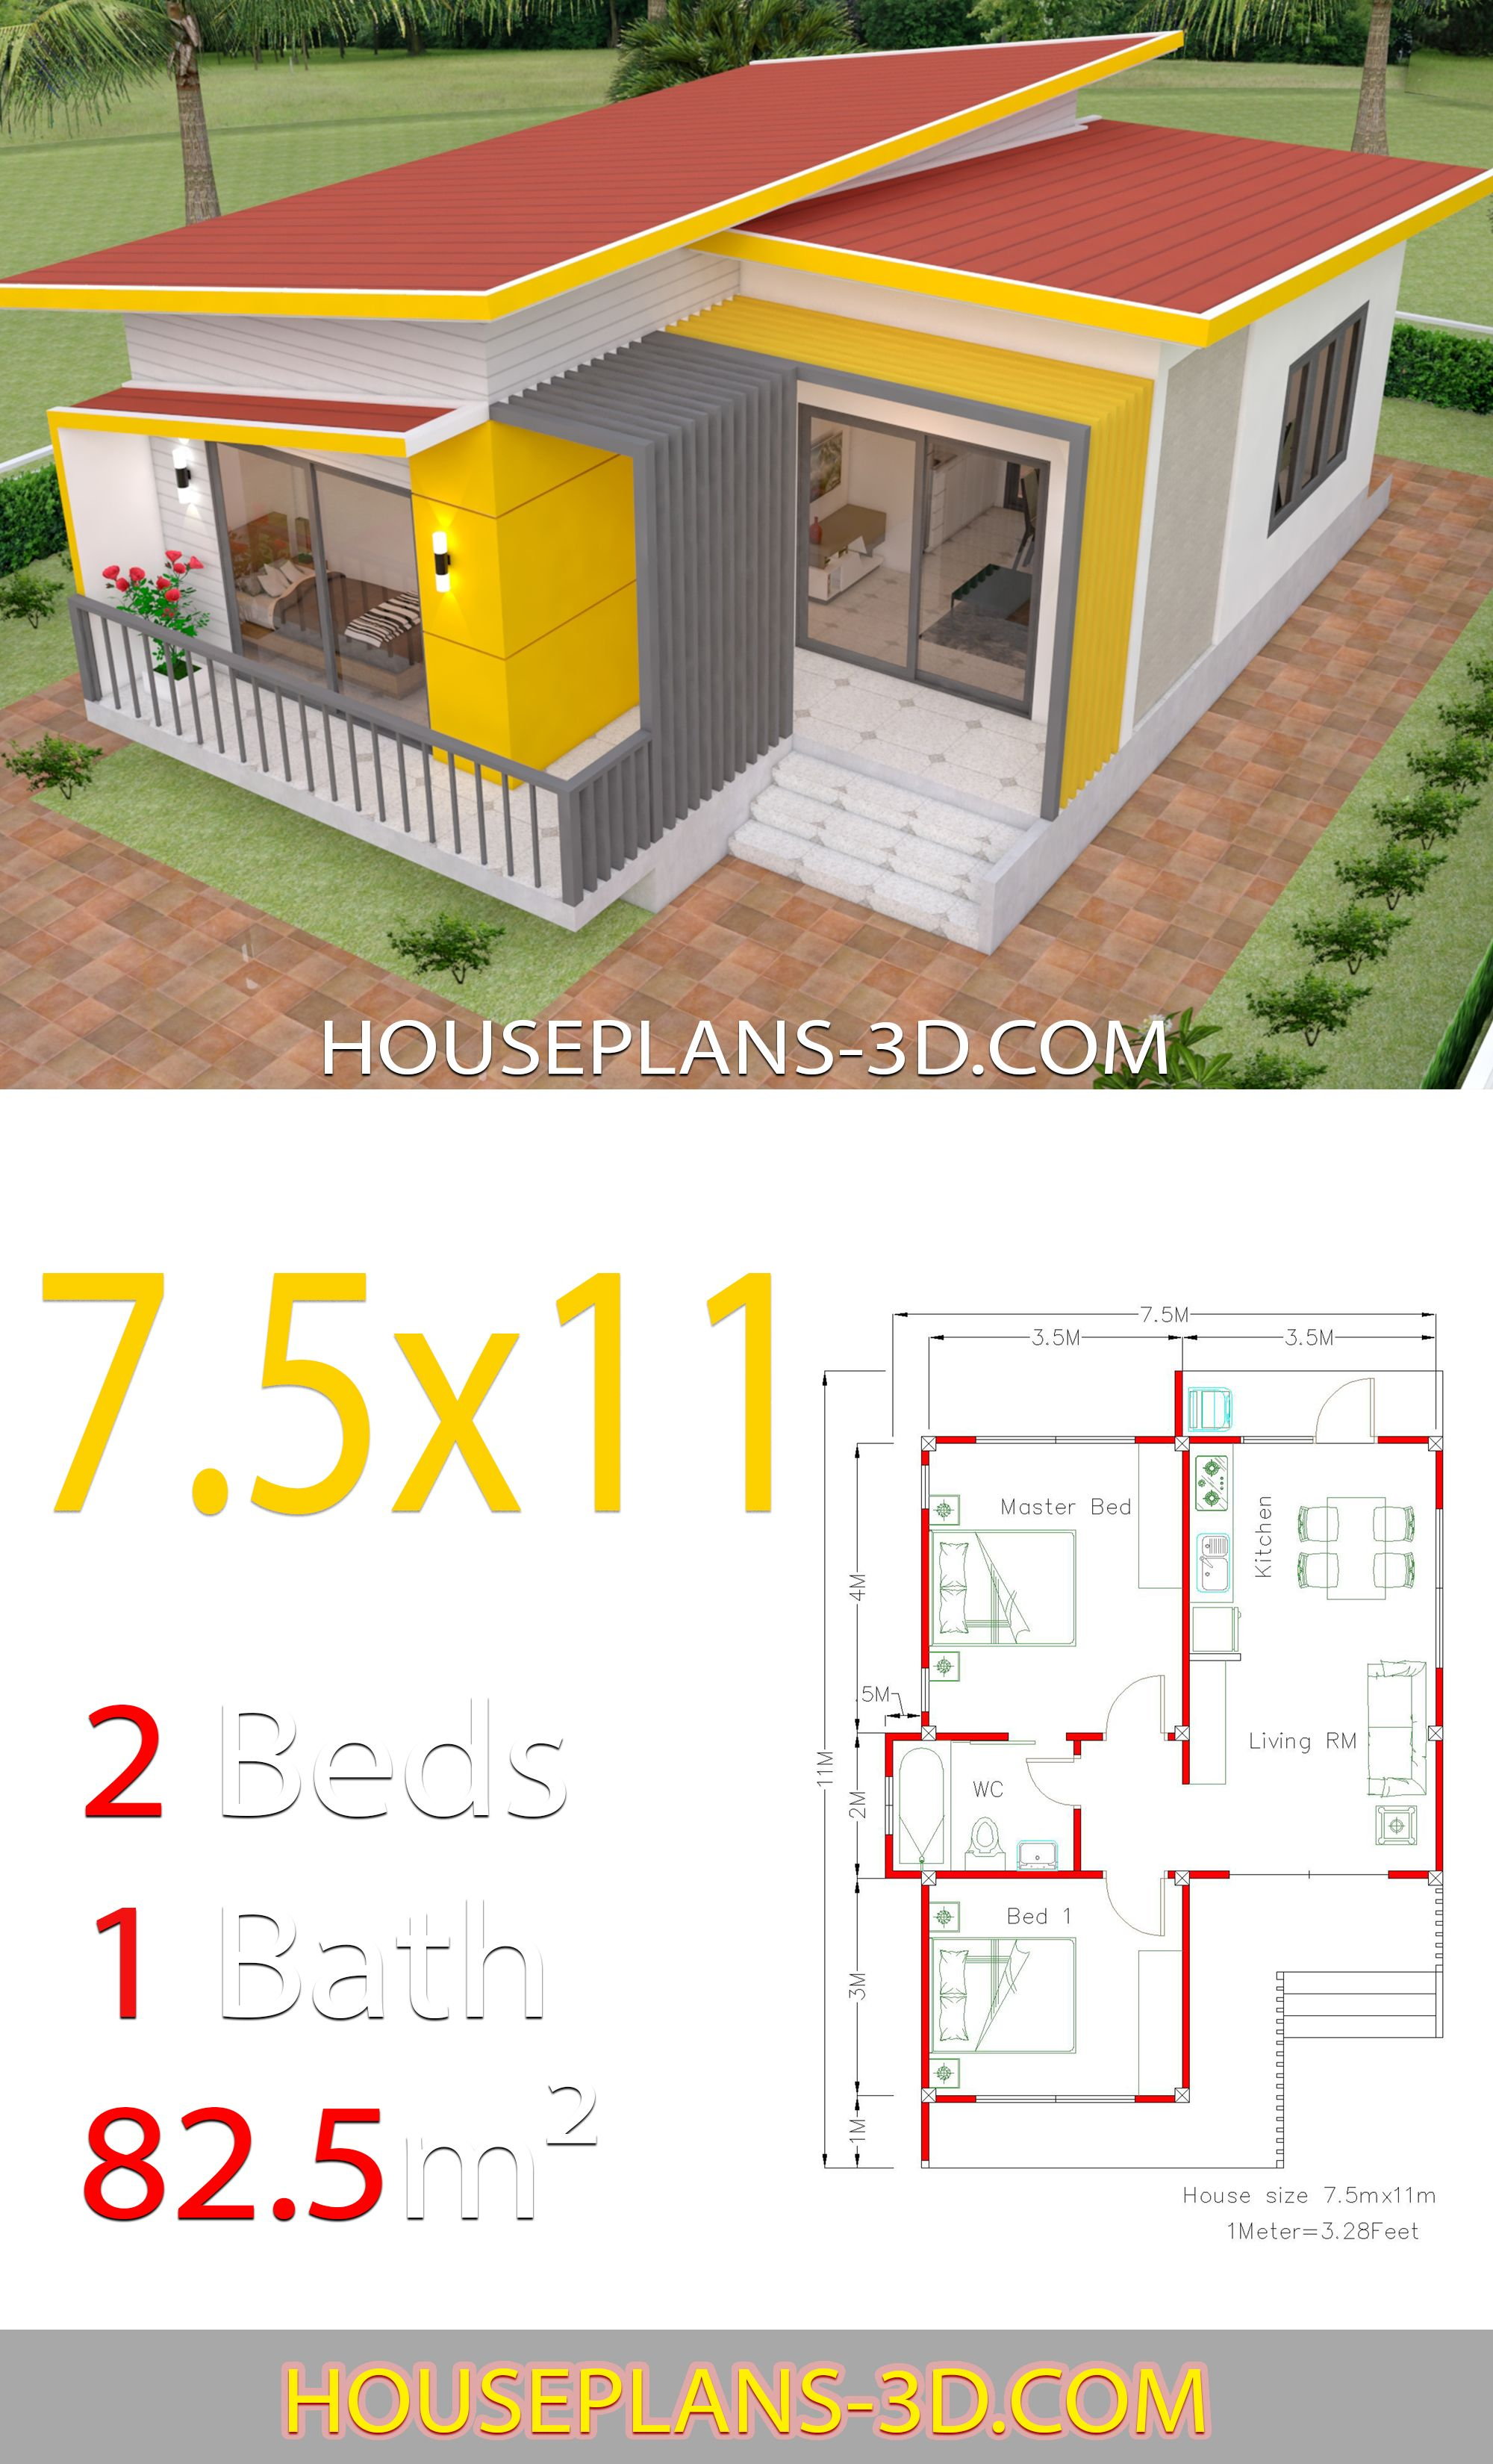 House Plans 7 5x11 With 2 Bedrooms Full Plans House Plans 3d In 2020 House Plans Small House Design Plans Small House Design